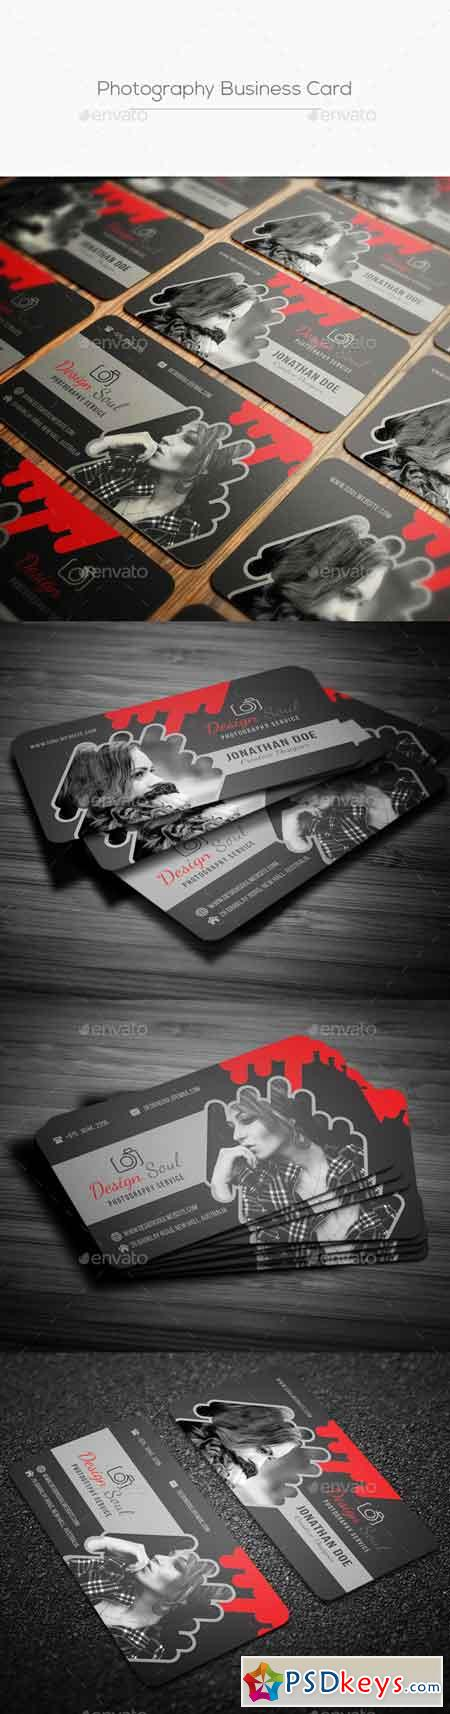 Photography Business Card 20429735